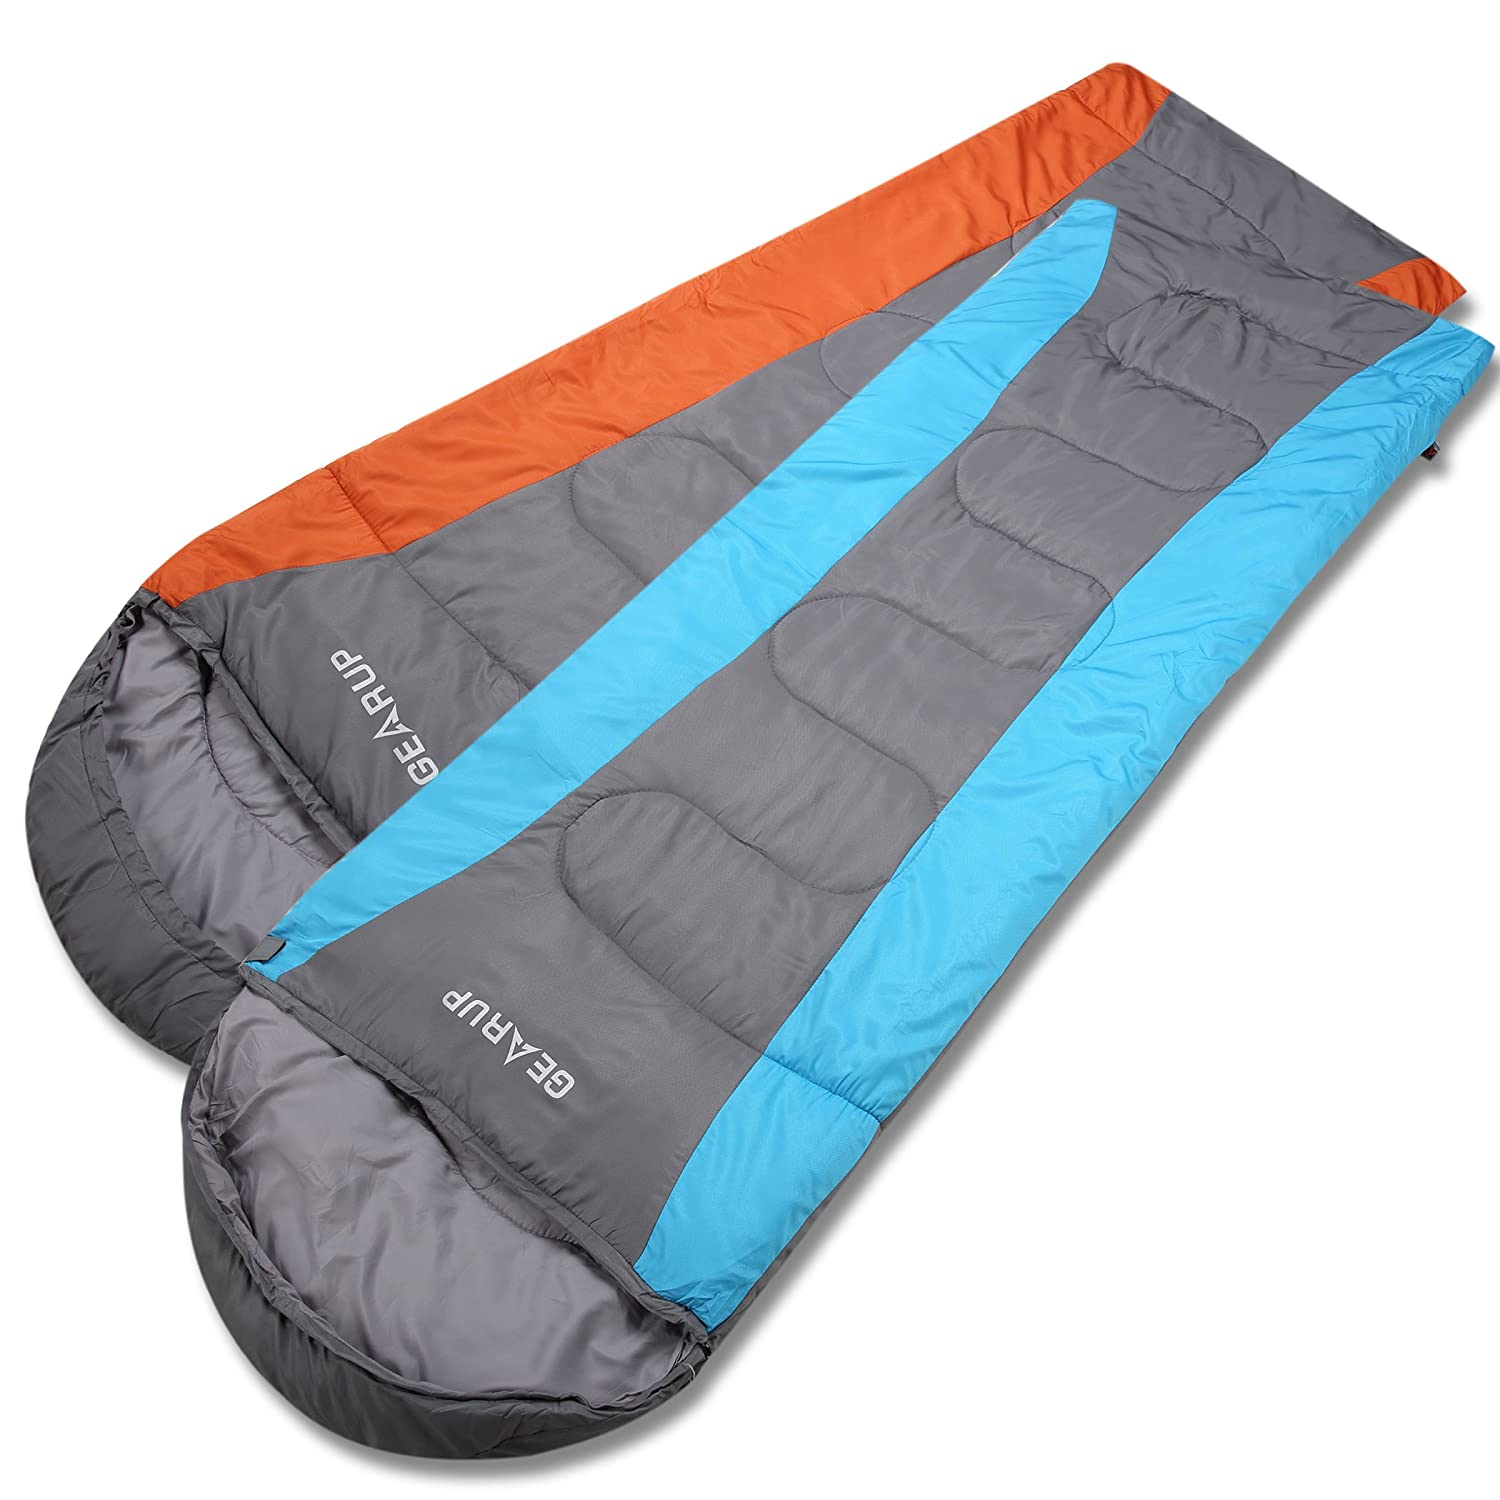 GEARUP Ultralight 50F Sleeping Bag for Spring Summer Camping Hiking with Stuff Sack Teen Sleeping Bag for Boys Girls 74 L 29 W Hood 12 L